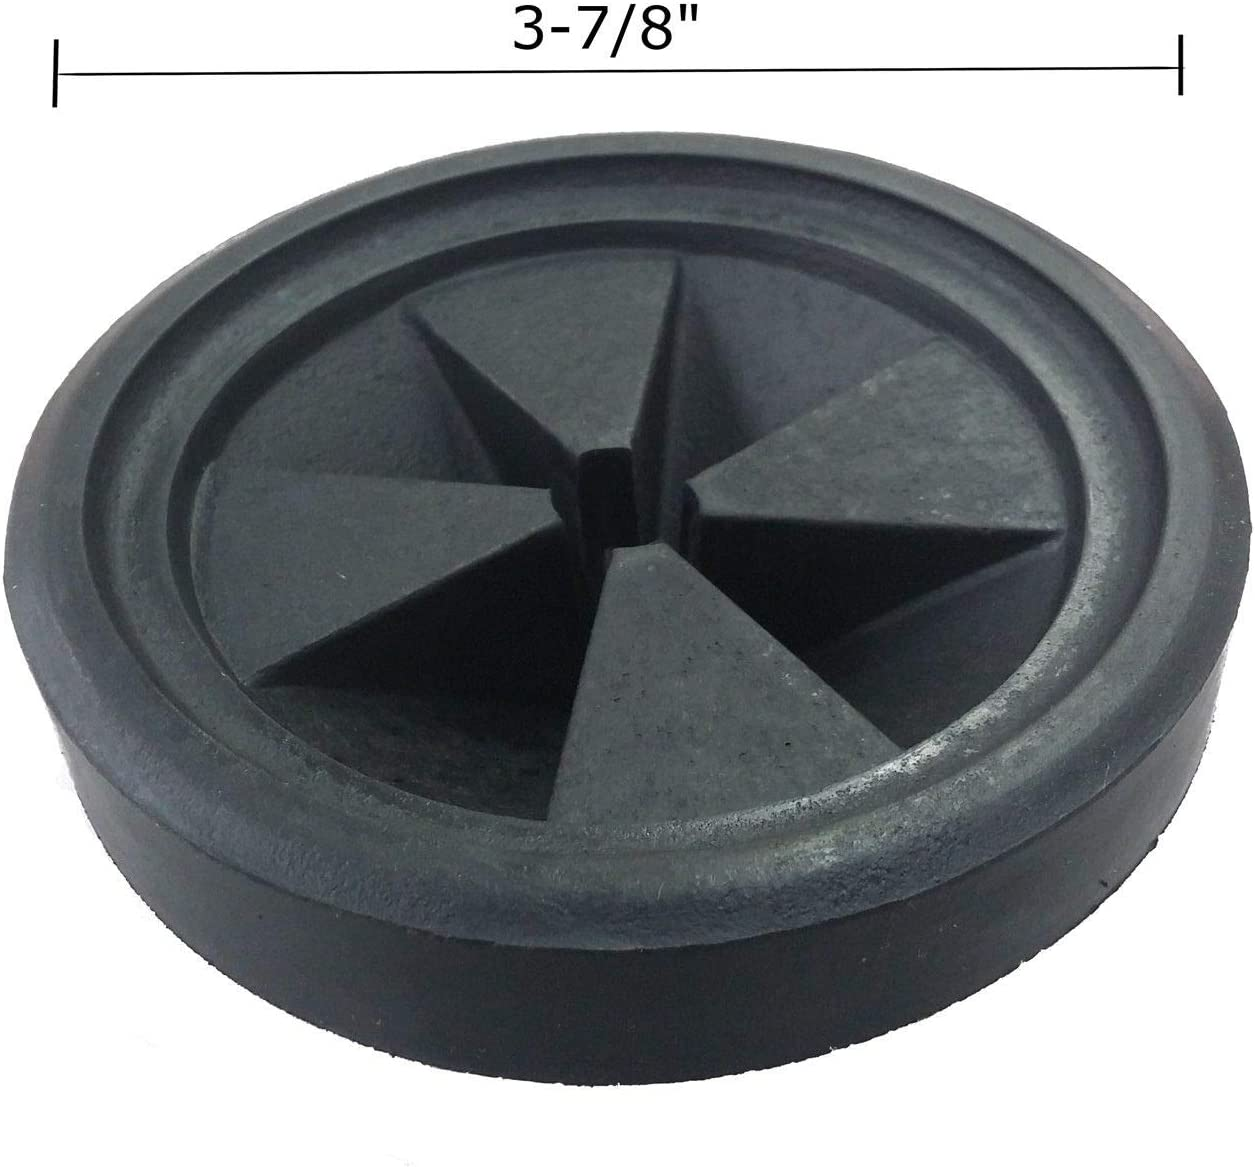 Renewed Podoy Disposal Splash Guard Garbage Stopper for Compatible with InSinkErator Black Rubber Quiet Collar Sink Baffle QCB-AM Evolution